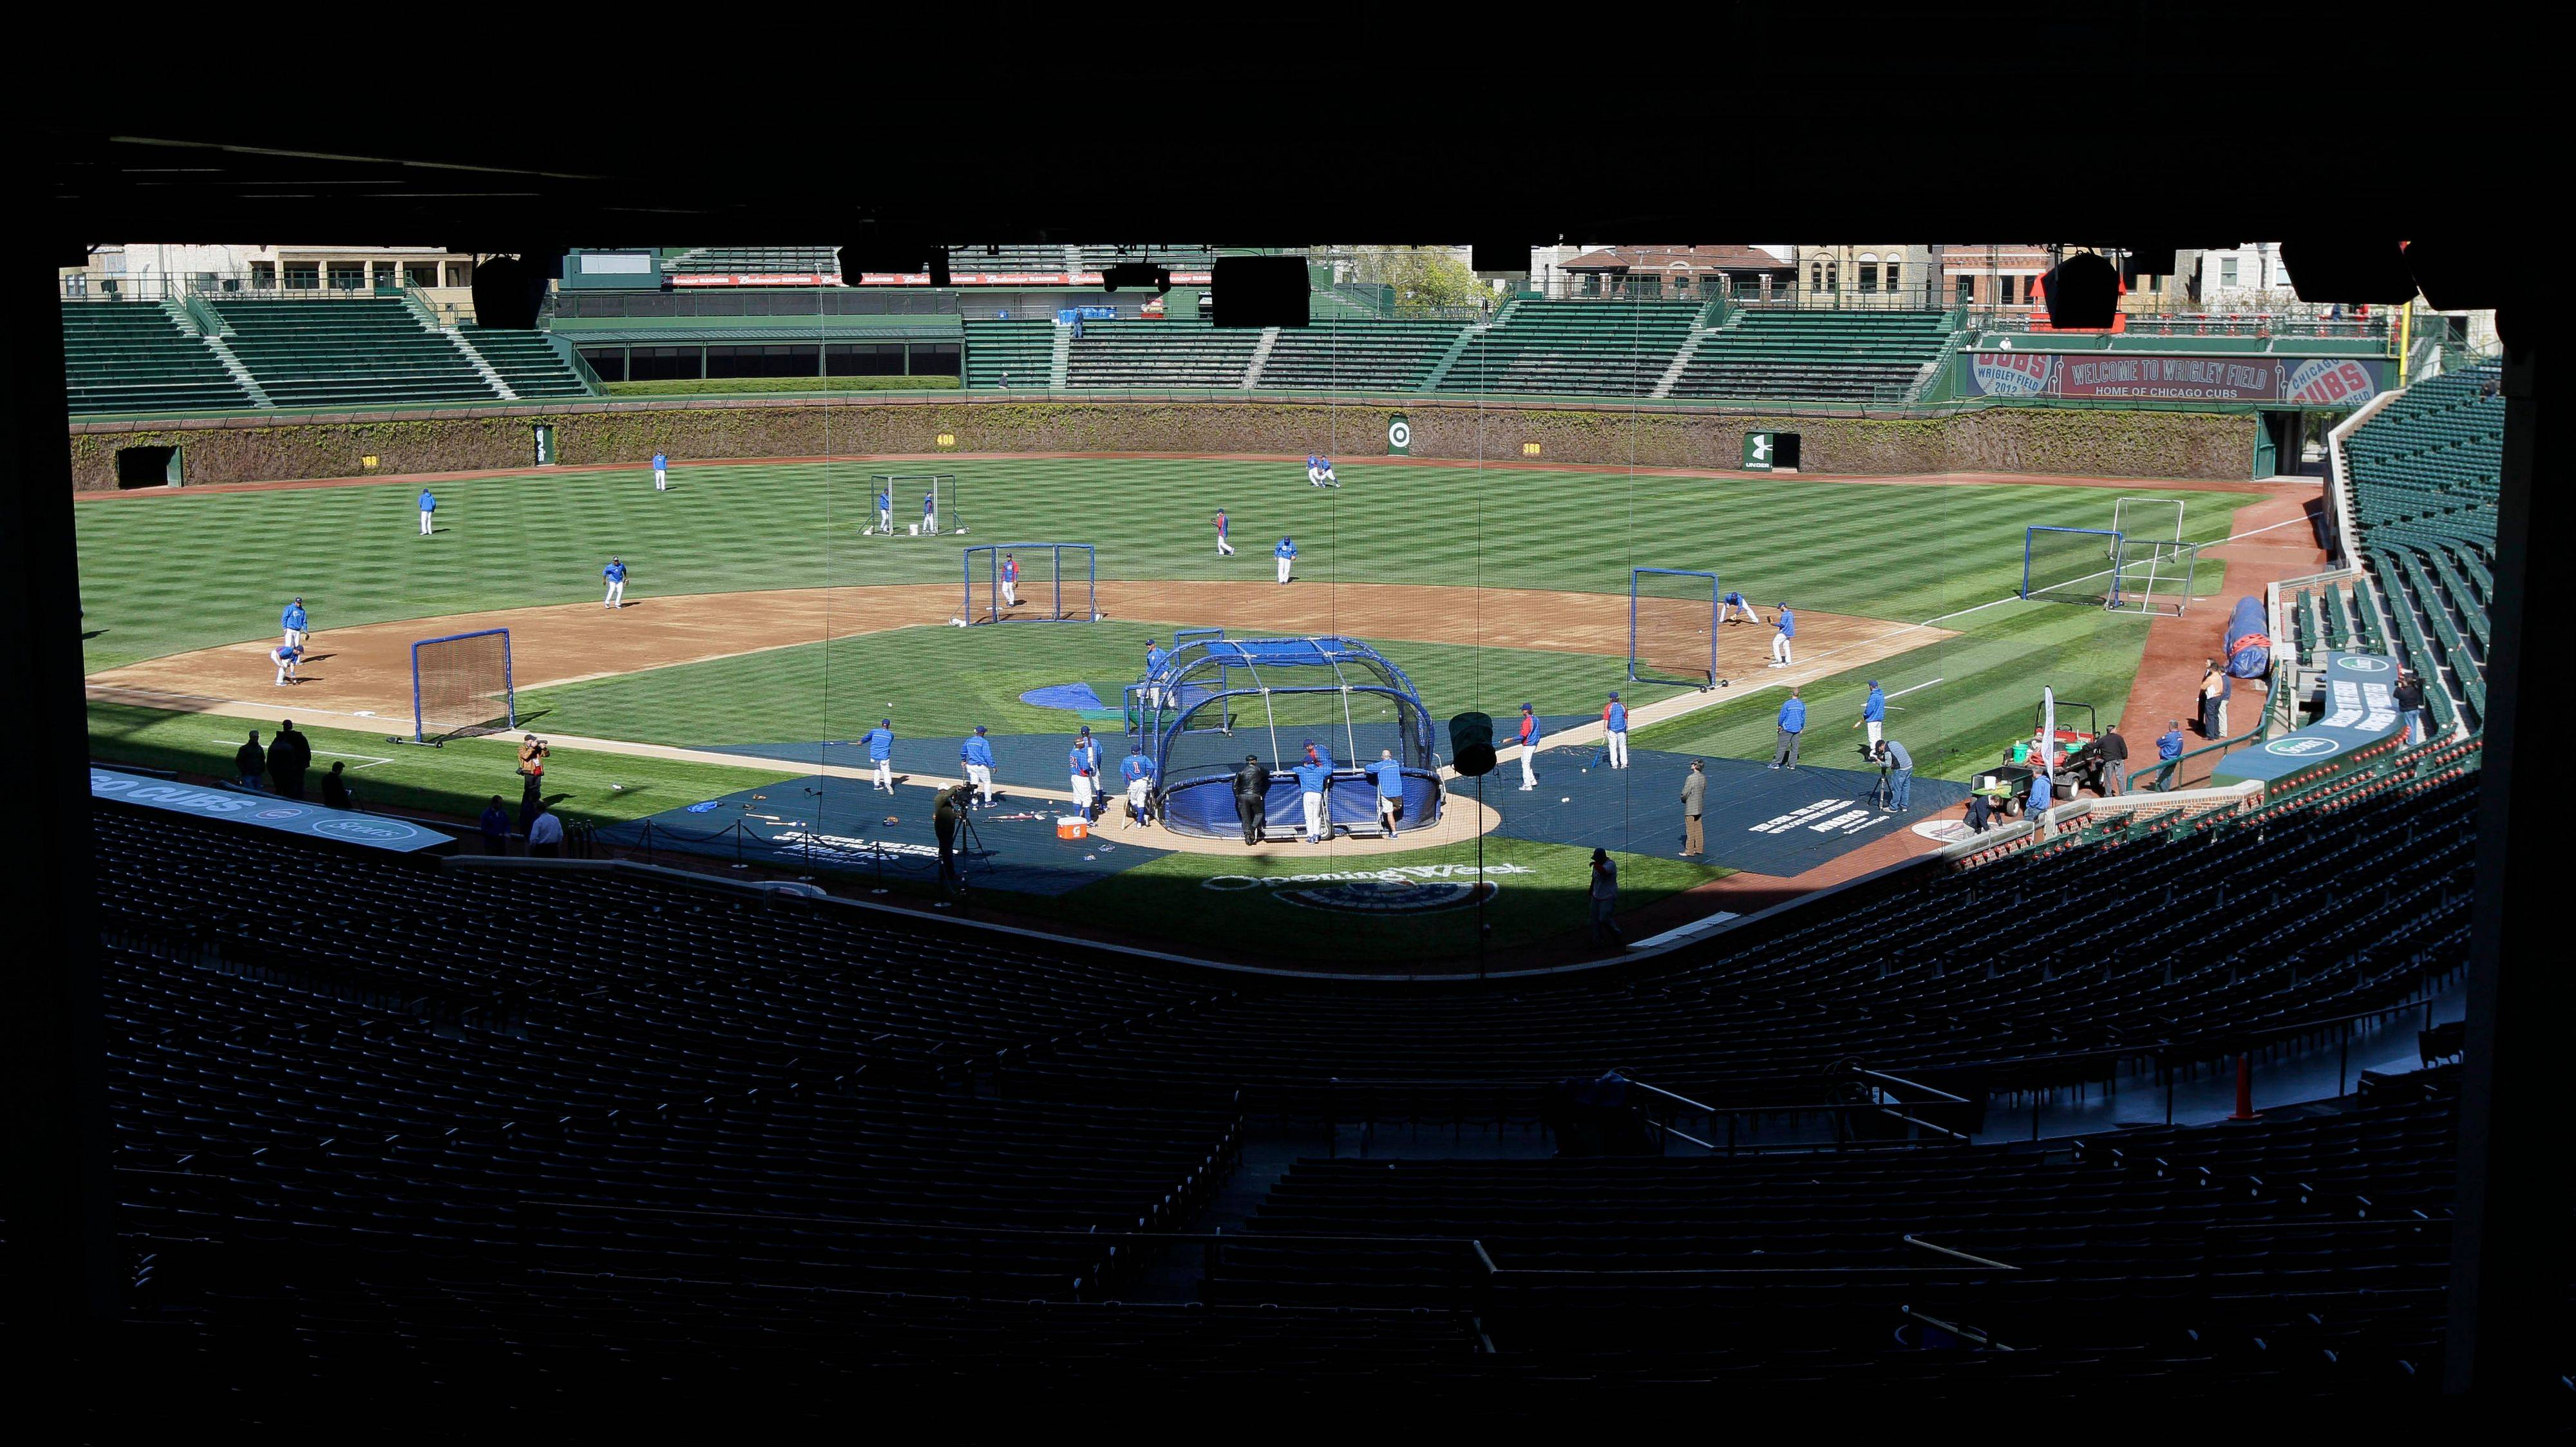 The Cubs will open the 2013 baseball season on the road and host their home opener April 8 against the Milwaukee Brewers.